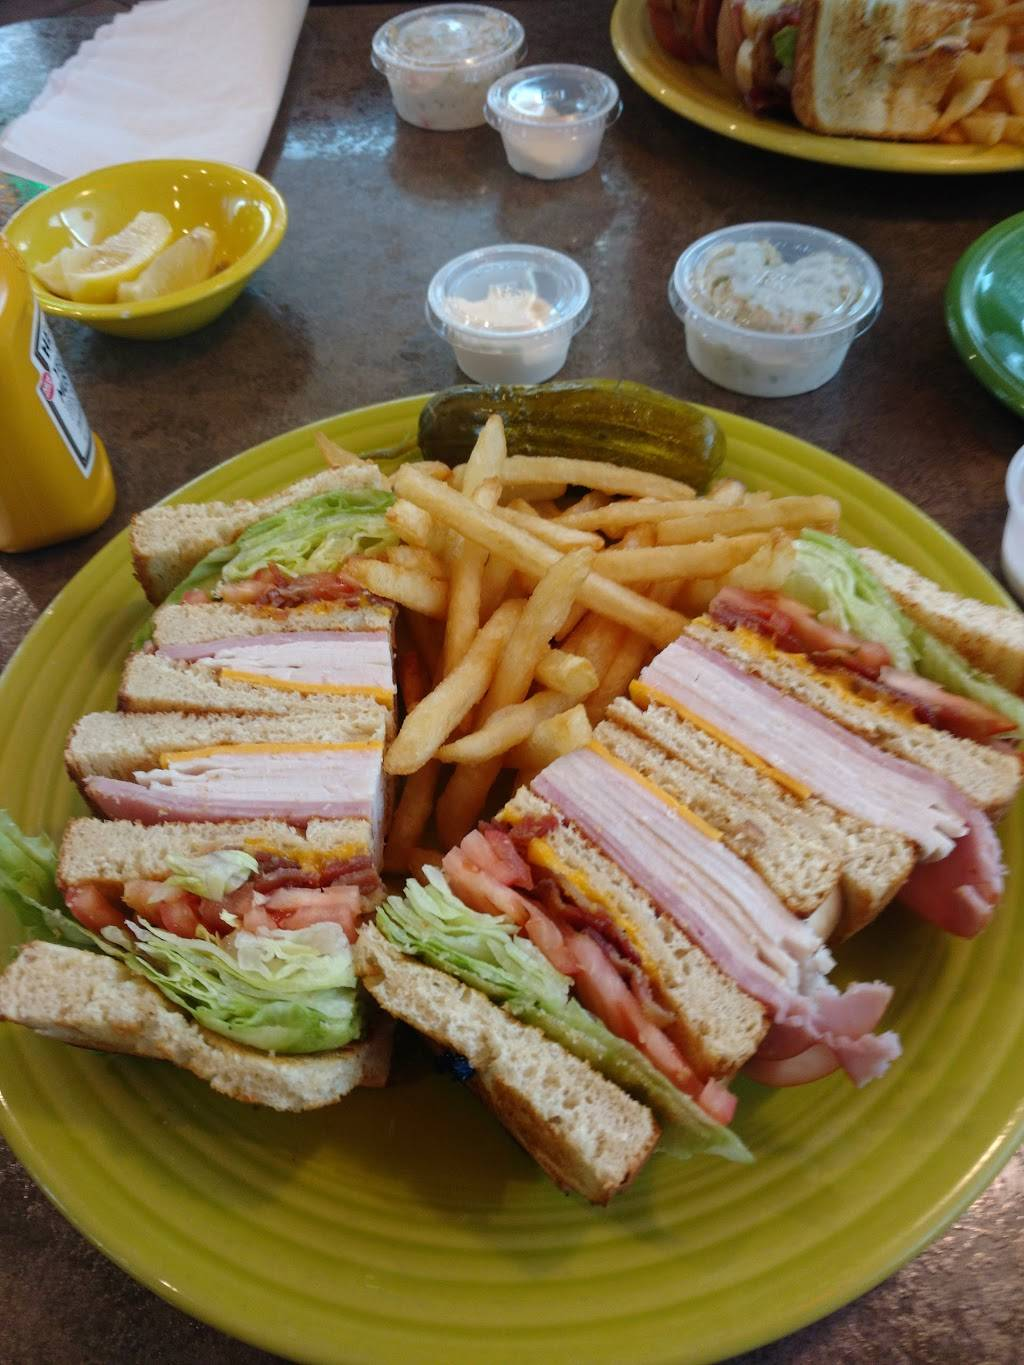 City Cafe Diner | cafe | 919 25th St NW, Cleveland, TN 37311, USA | 4237907460 OR +1 423-790-7460